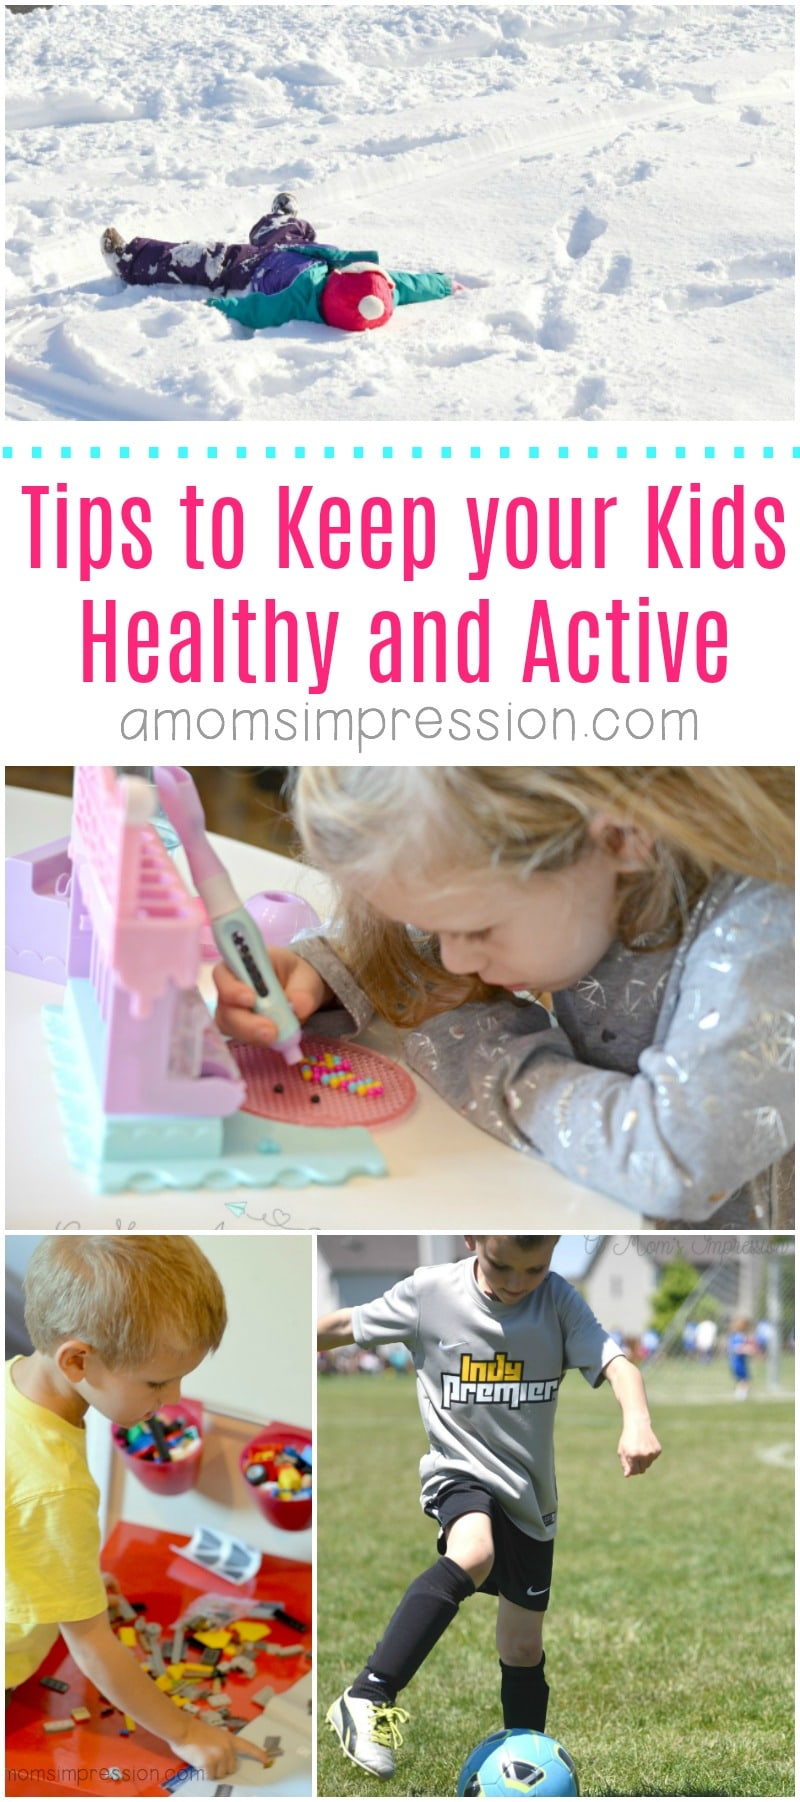 Tips to keep you kids healthy and active